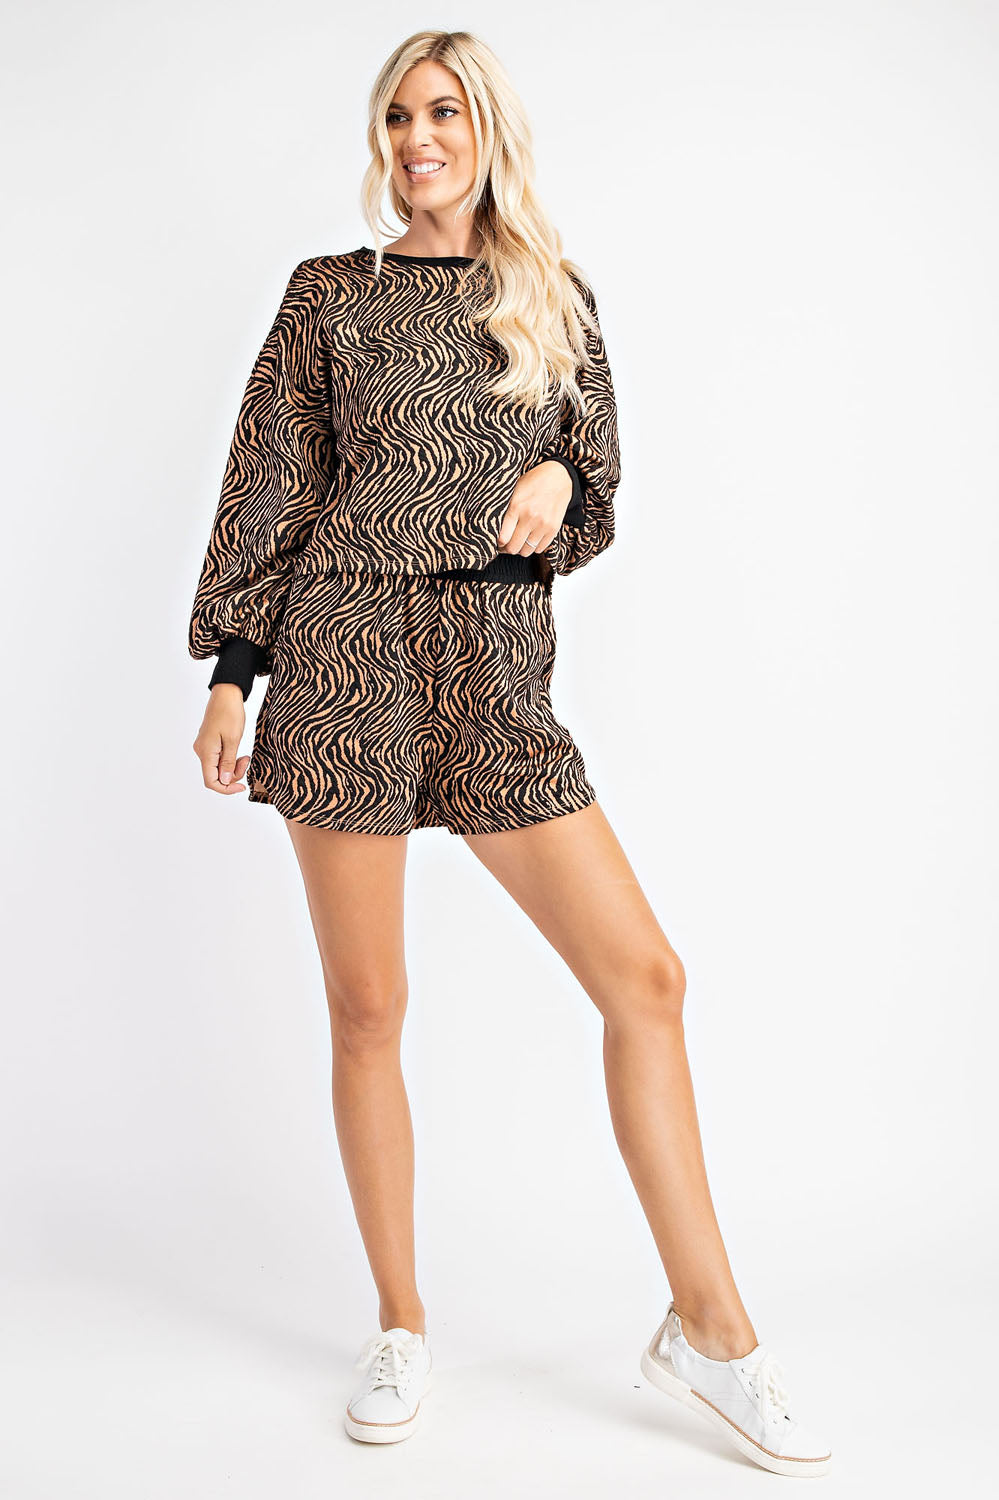 Zebra Print Jacquard Shorts with set sweater top